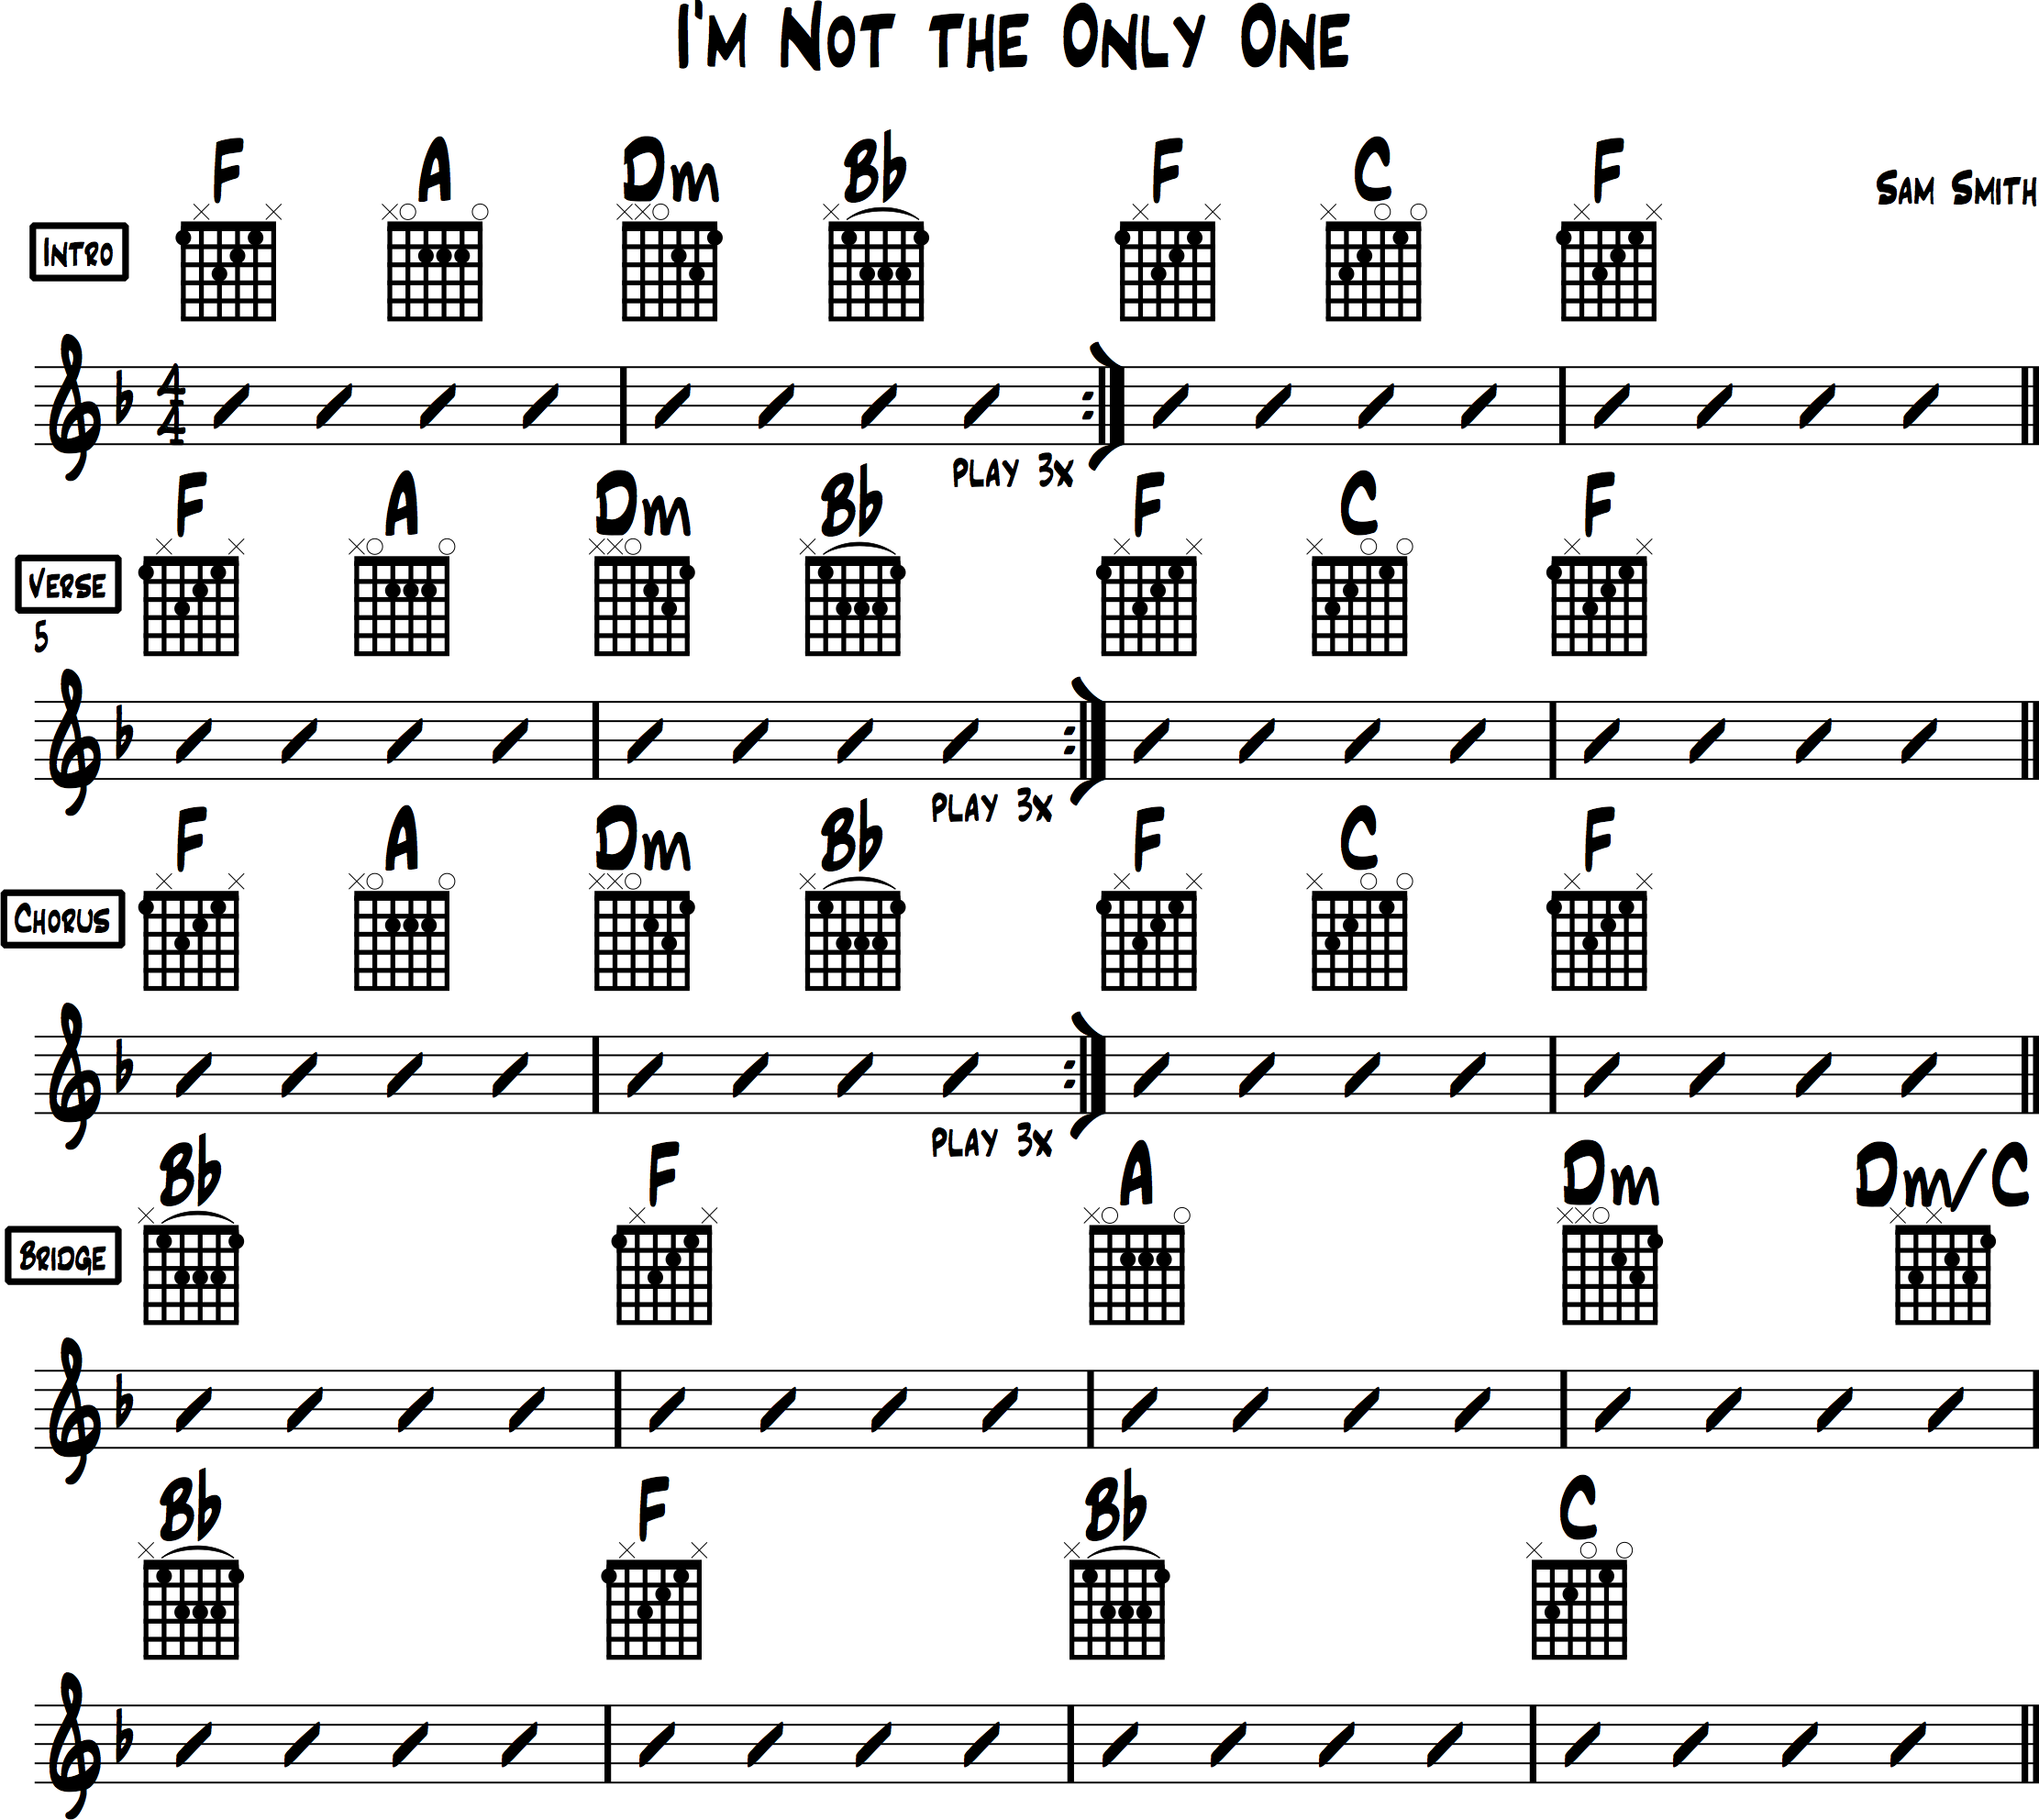 Chord Chart for I'm Not the Only One